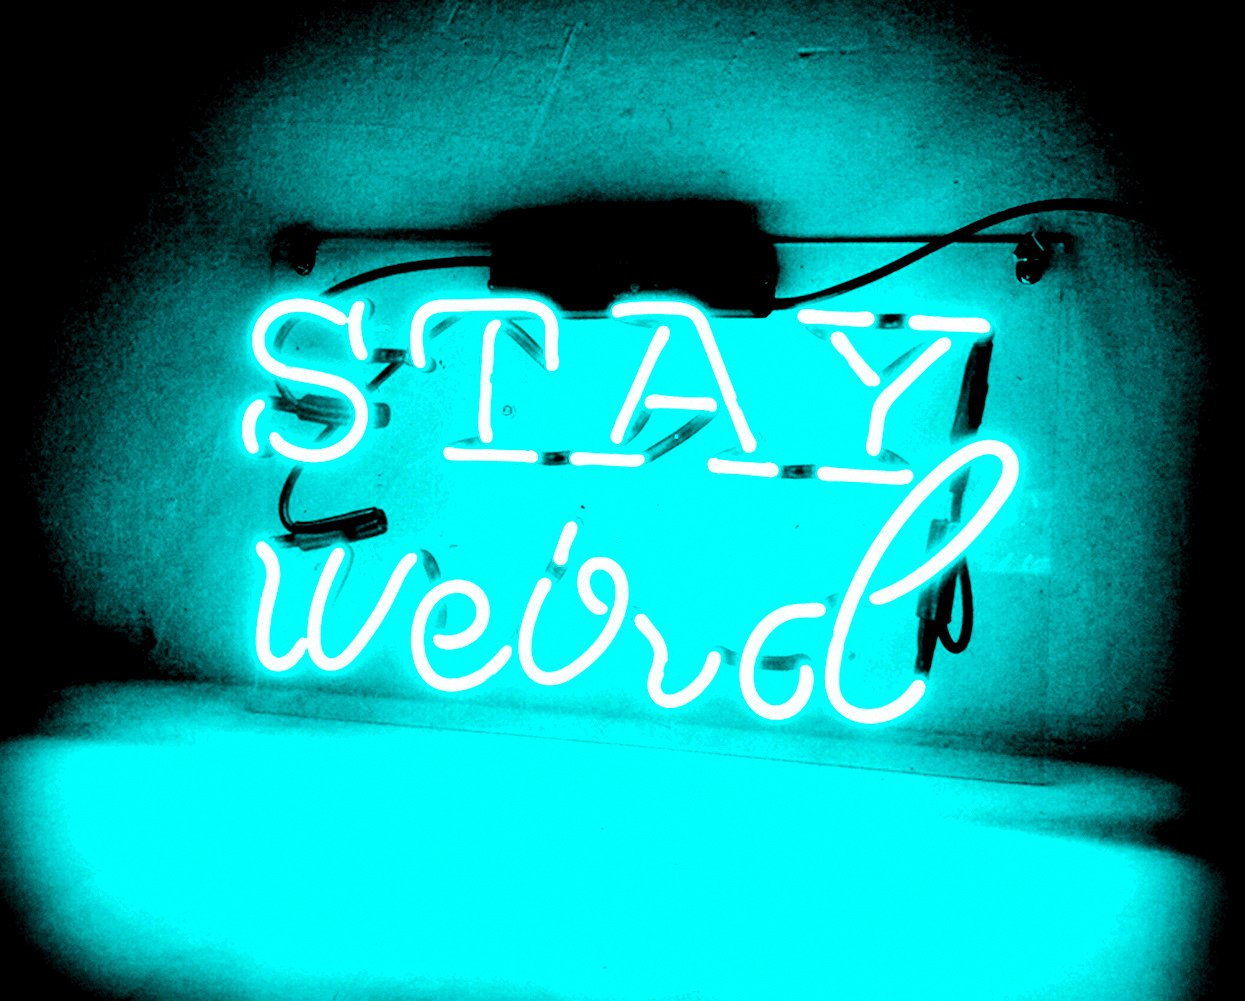 Night Light lamp Decor Neon Light Sign Beer Bar Custom Home Lighting Decorations - Perfect for Bedroom, Living Room, Hallway, Stairways, Office, Garage, Windows - STAY weird